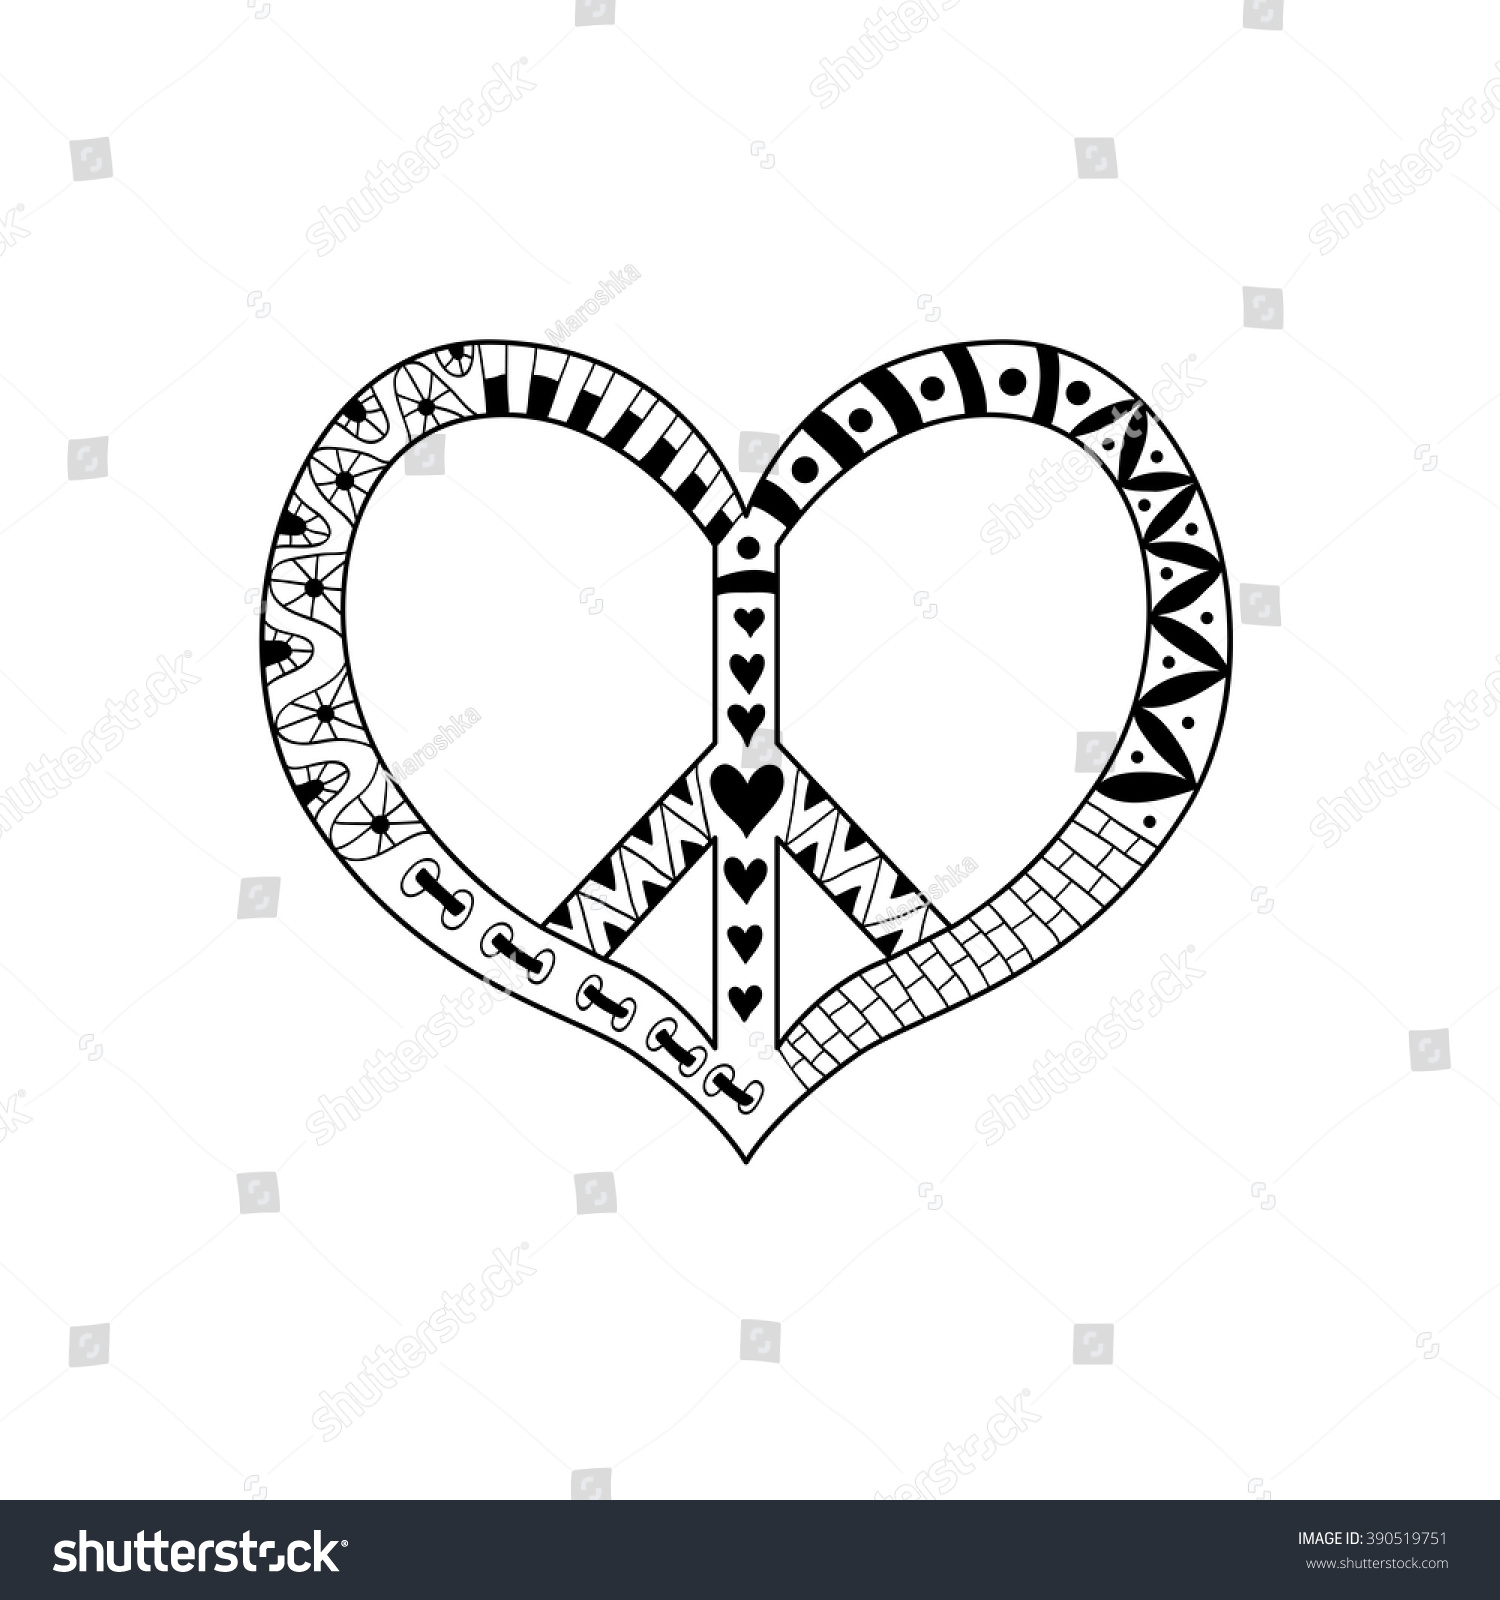 hippie vintage peace symbol zentangle style stock vector 390519751